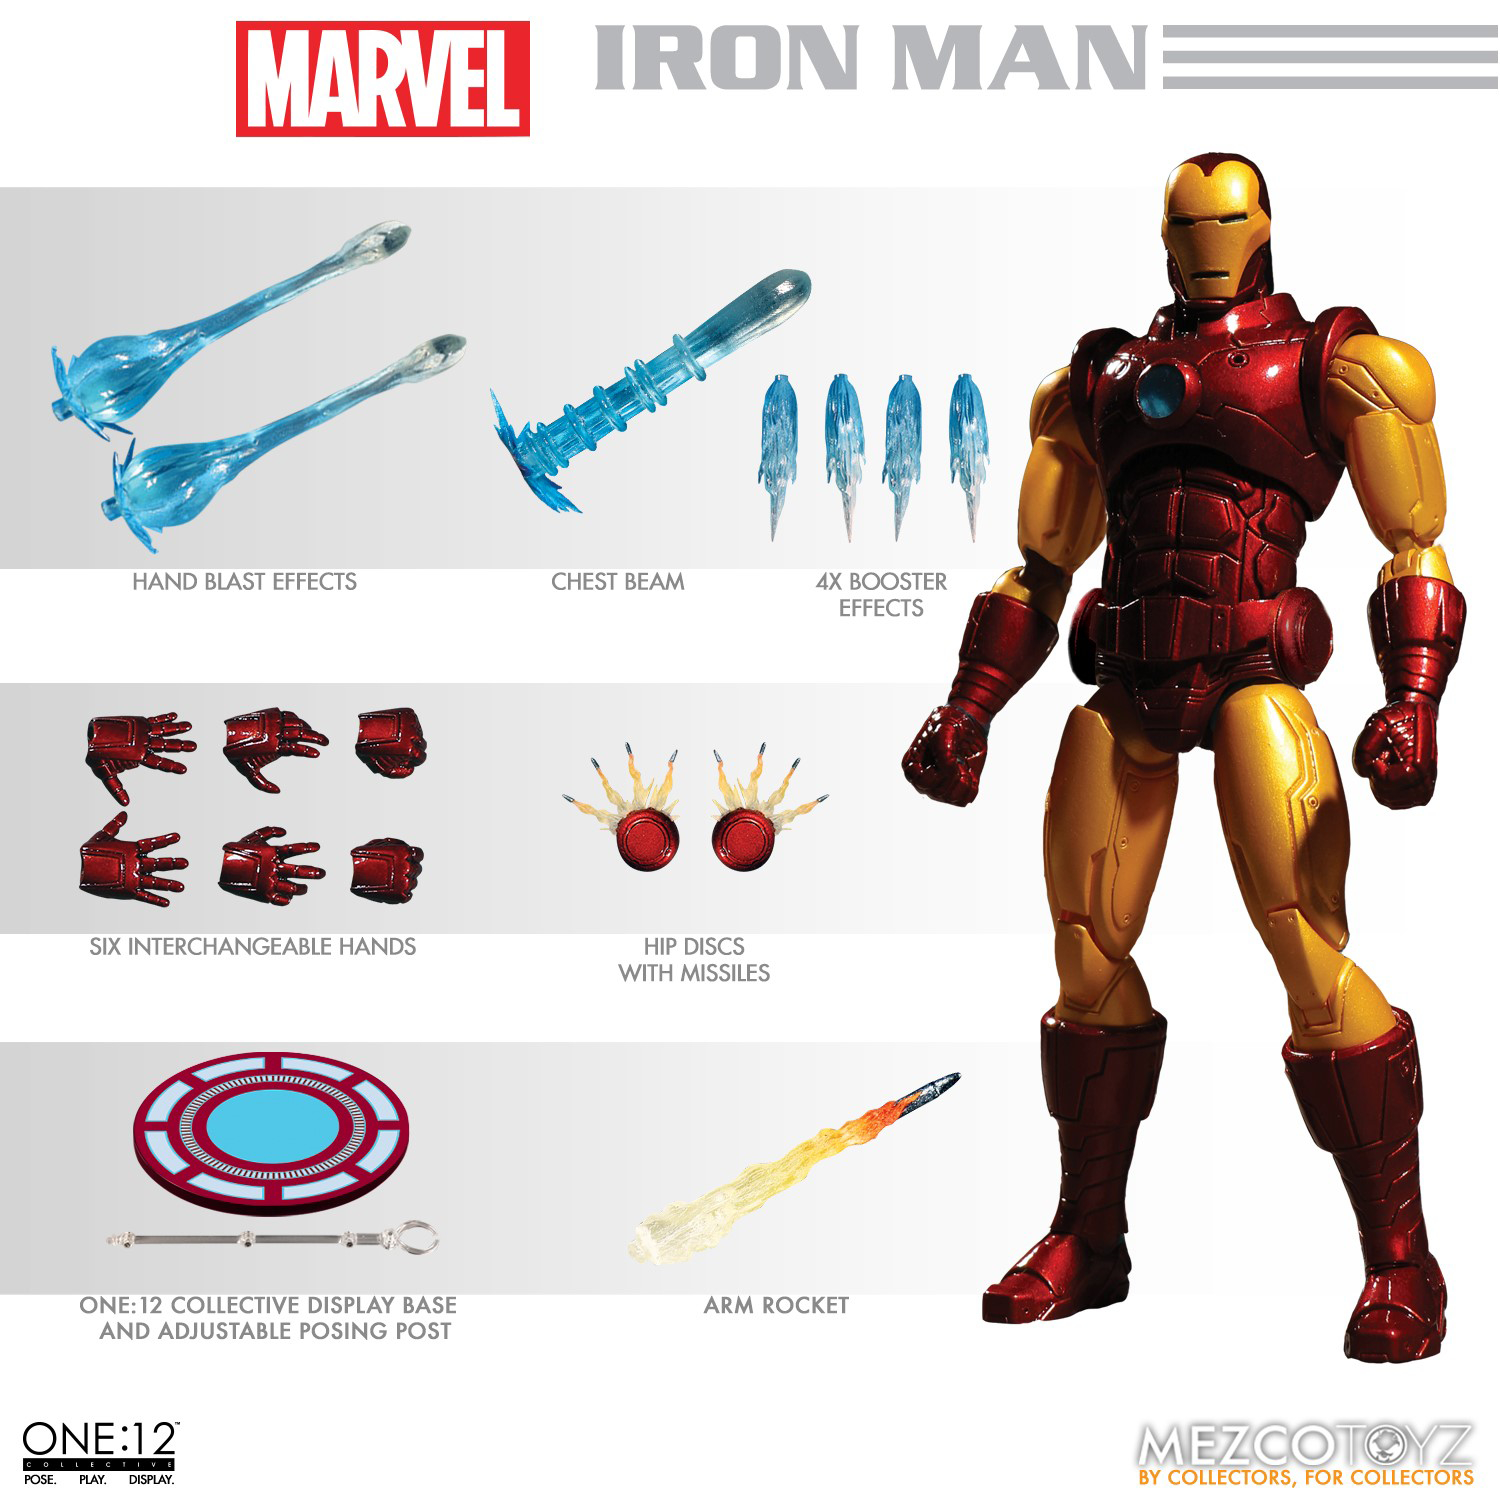 ONE-12 COLLECTIVE MARVEL IRON MAN AF